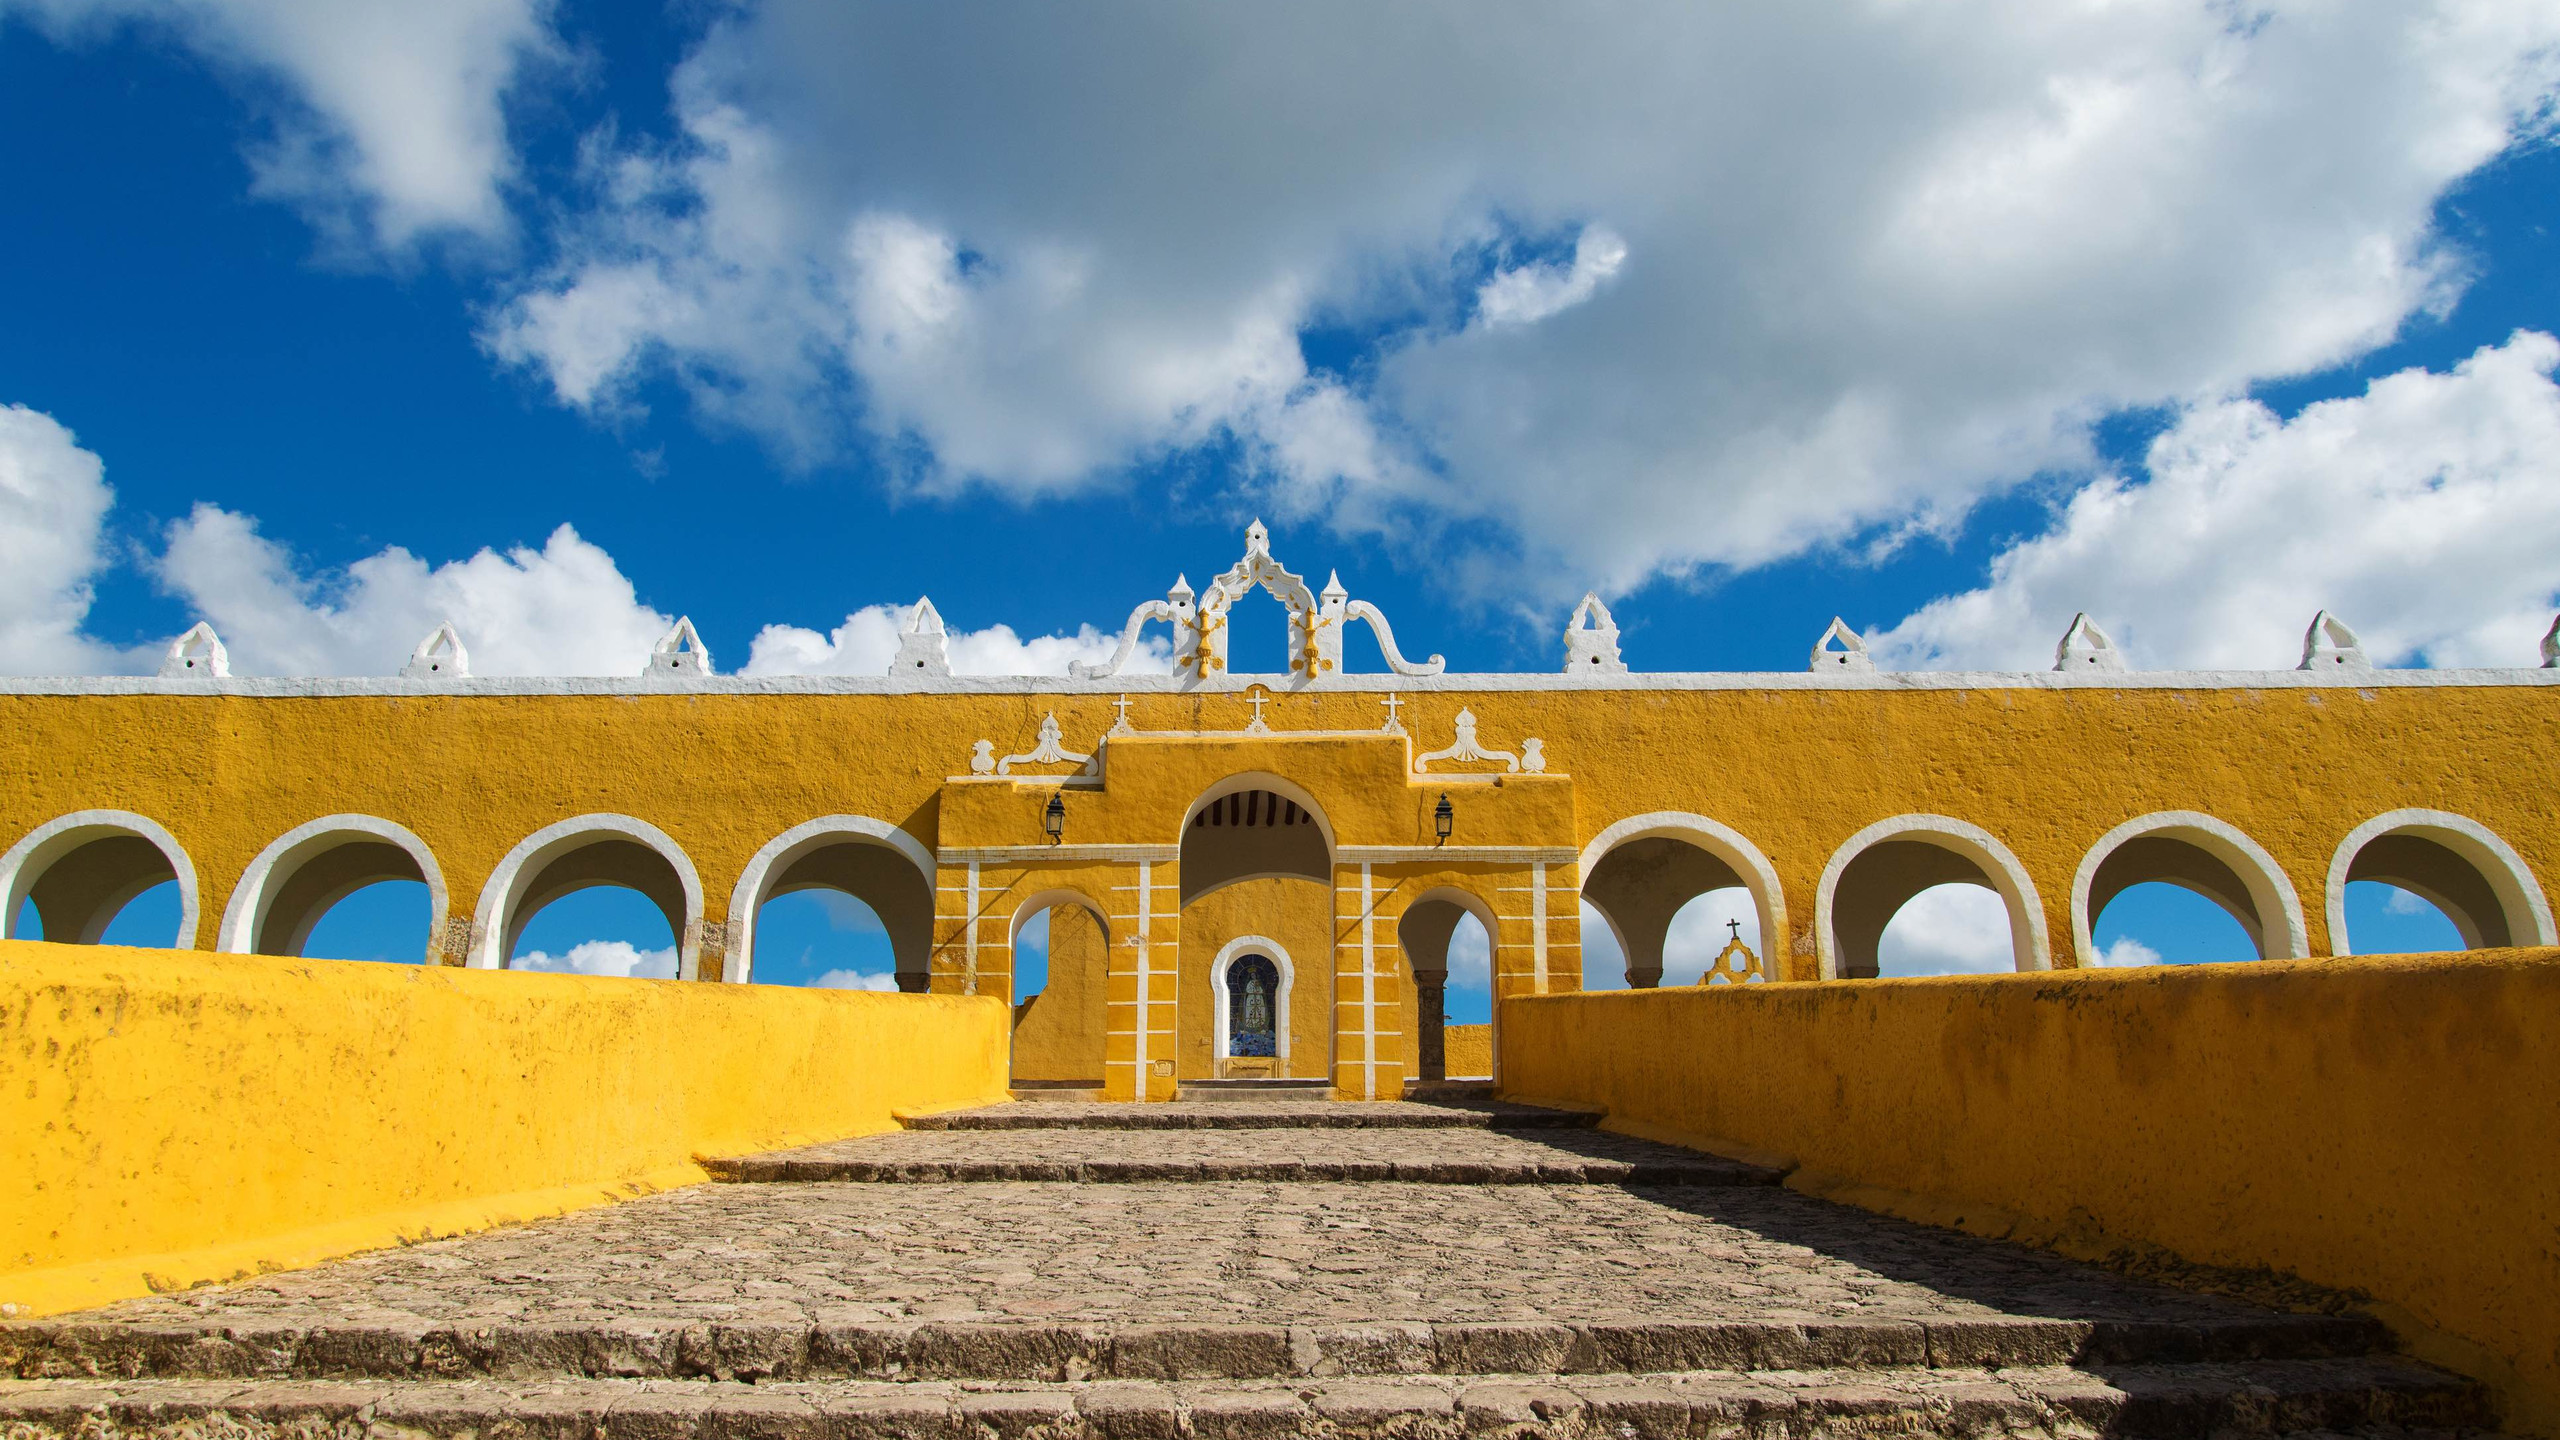 The whole of Mexico in general is one huge explosion of colour, but it's the infrastructure of Izamal, Mexico that makes it our third Most Colourful Destination. The small city of Izamal is endearingly referred to as 'The Yellow City' thanks to the colour most buildings are painted. Having significance from an archaeological sense, the city is known for the Pre-Colombian Maya civilisation that once called the area Izamal has since been built on, home.